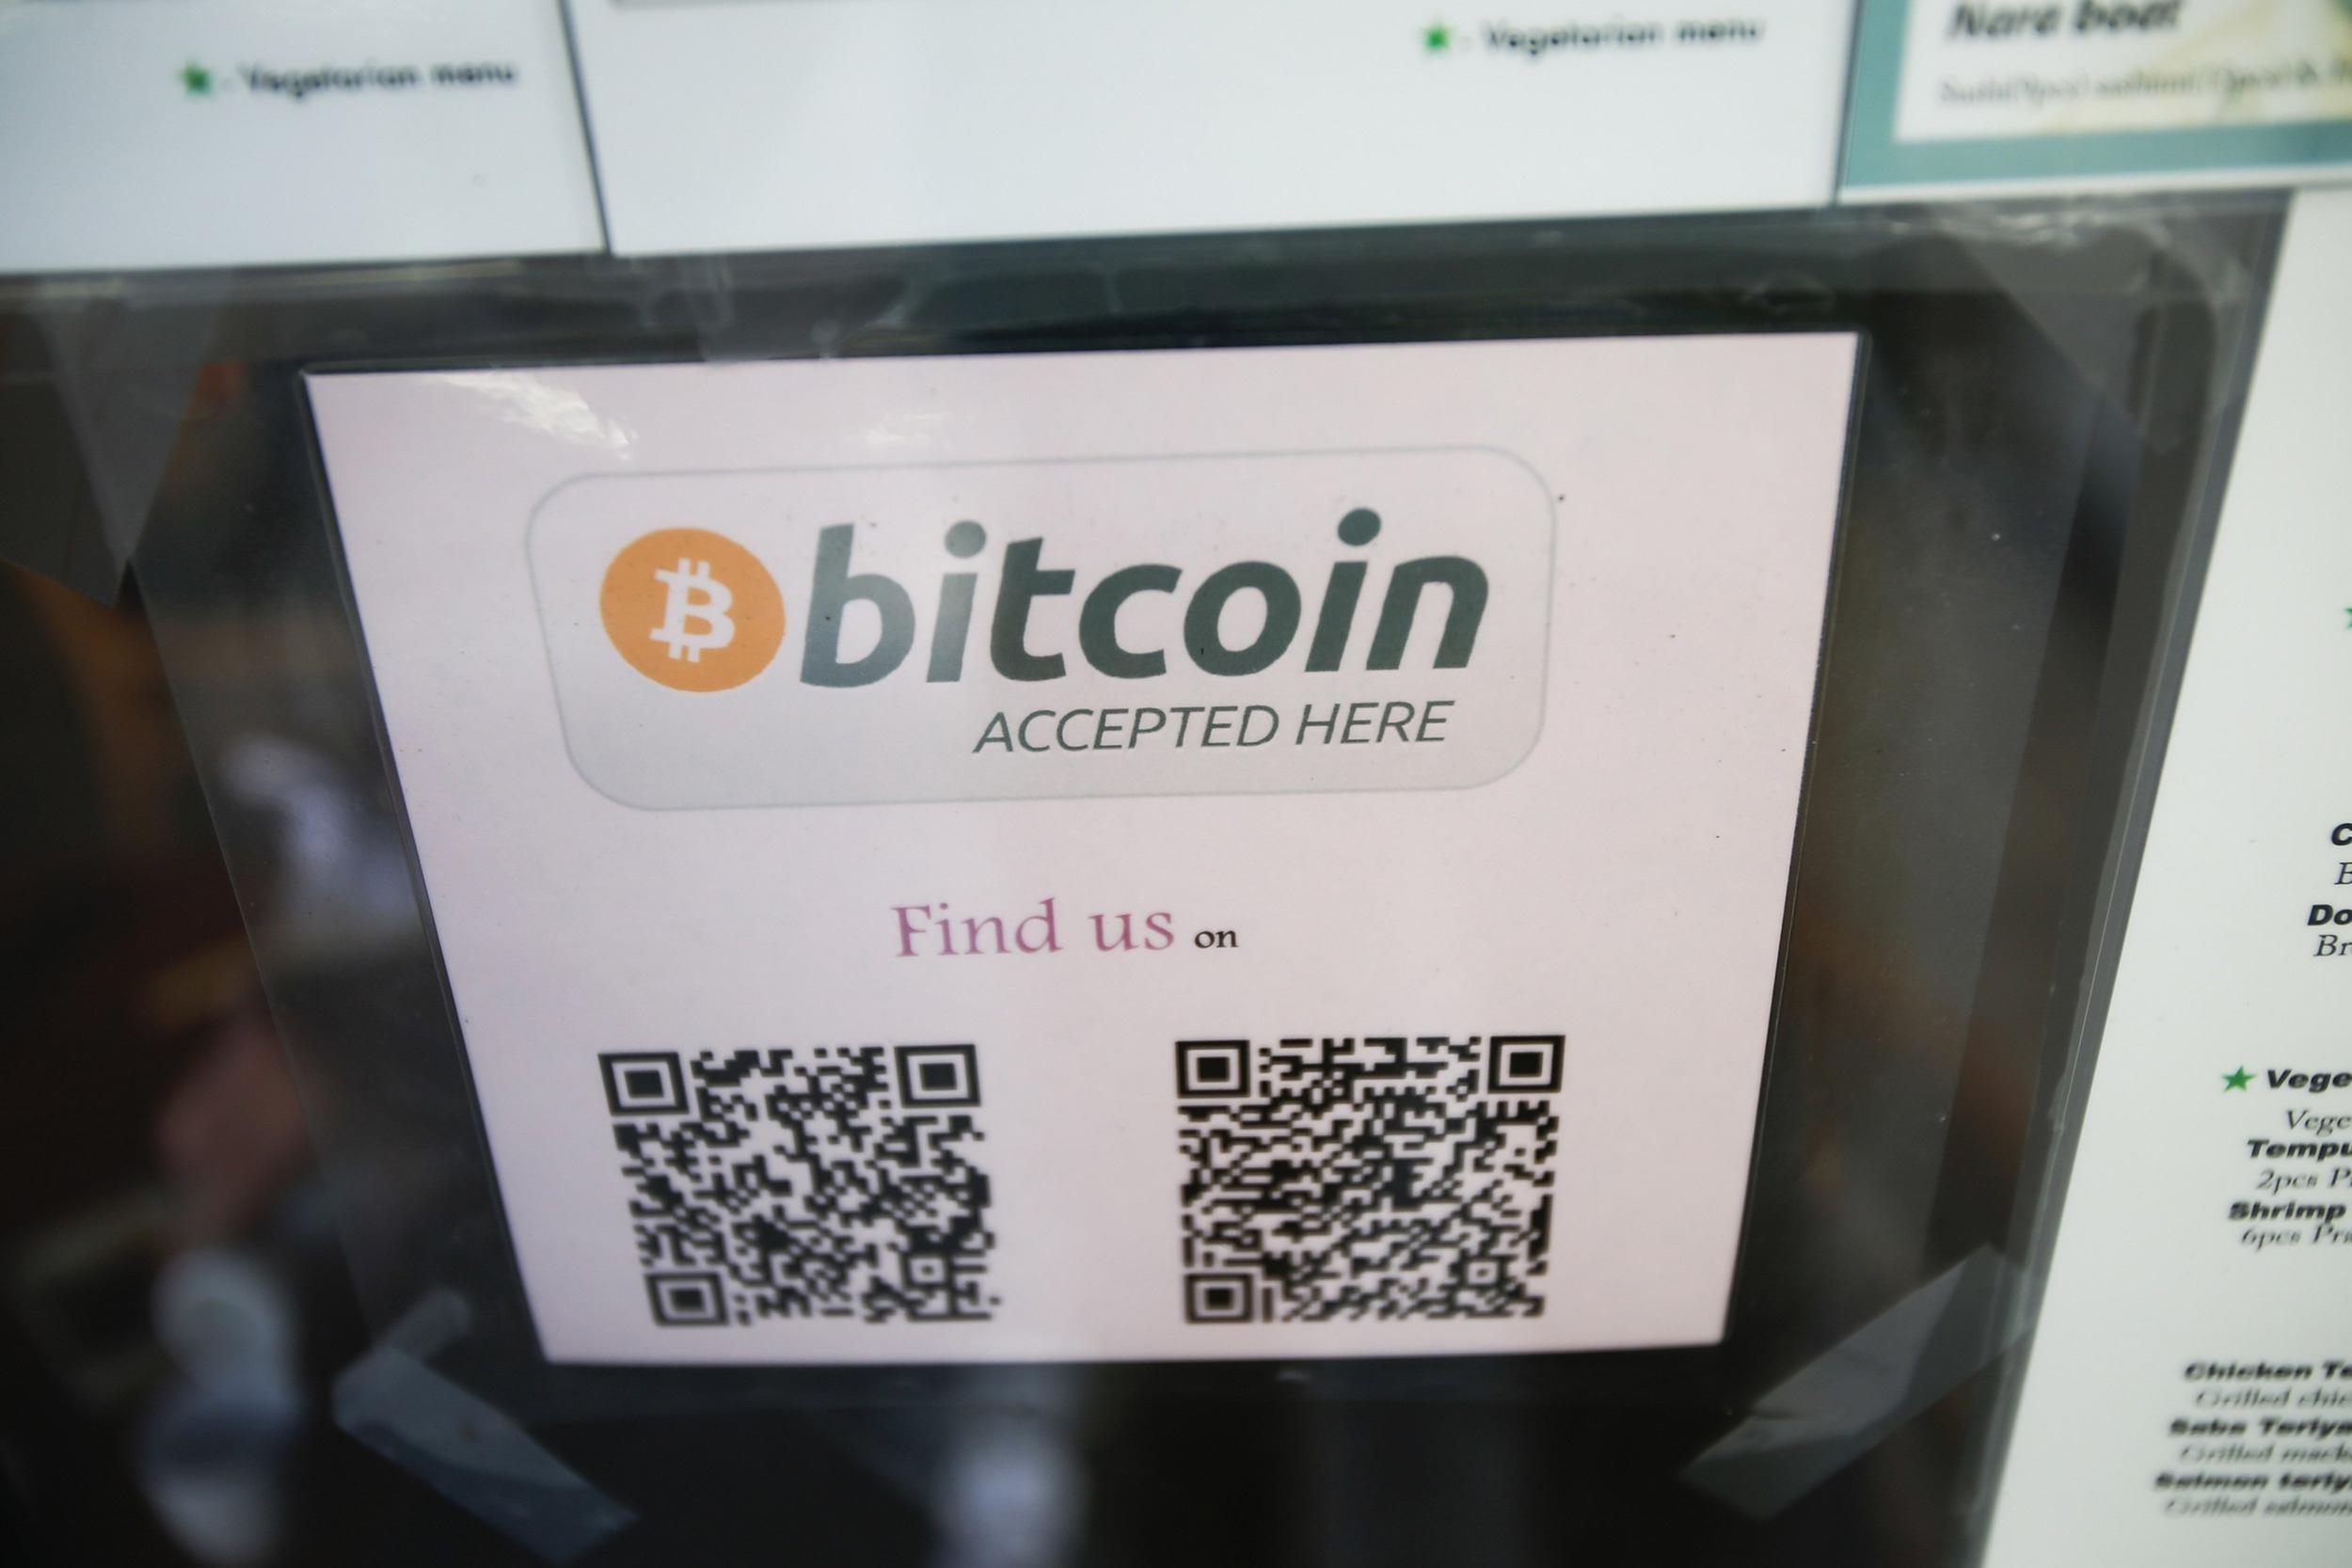 A Bitcoin logo is seen at the window of Nara Sushi, a restaurant that accepts Bitcoin.